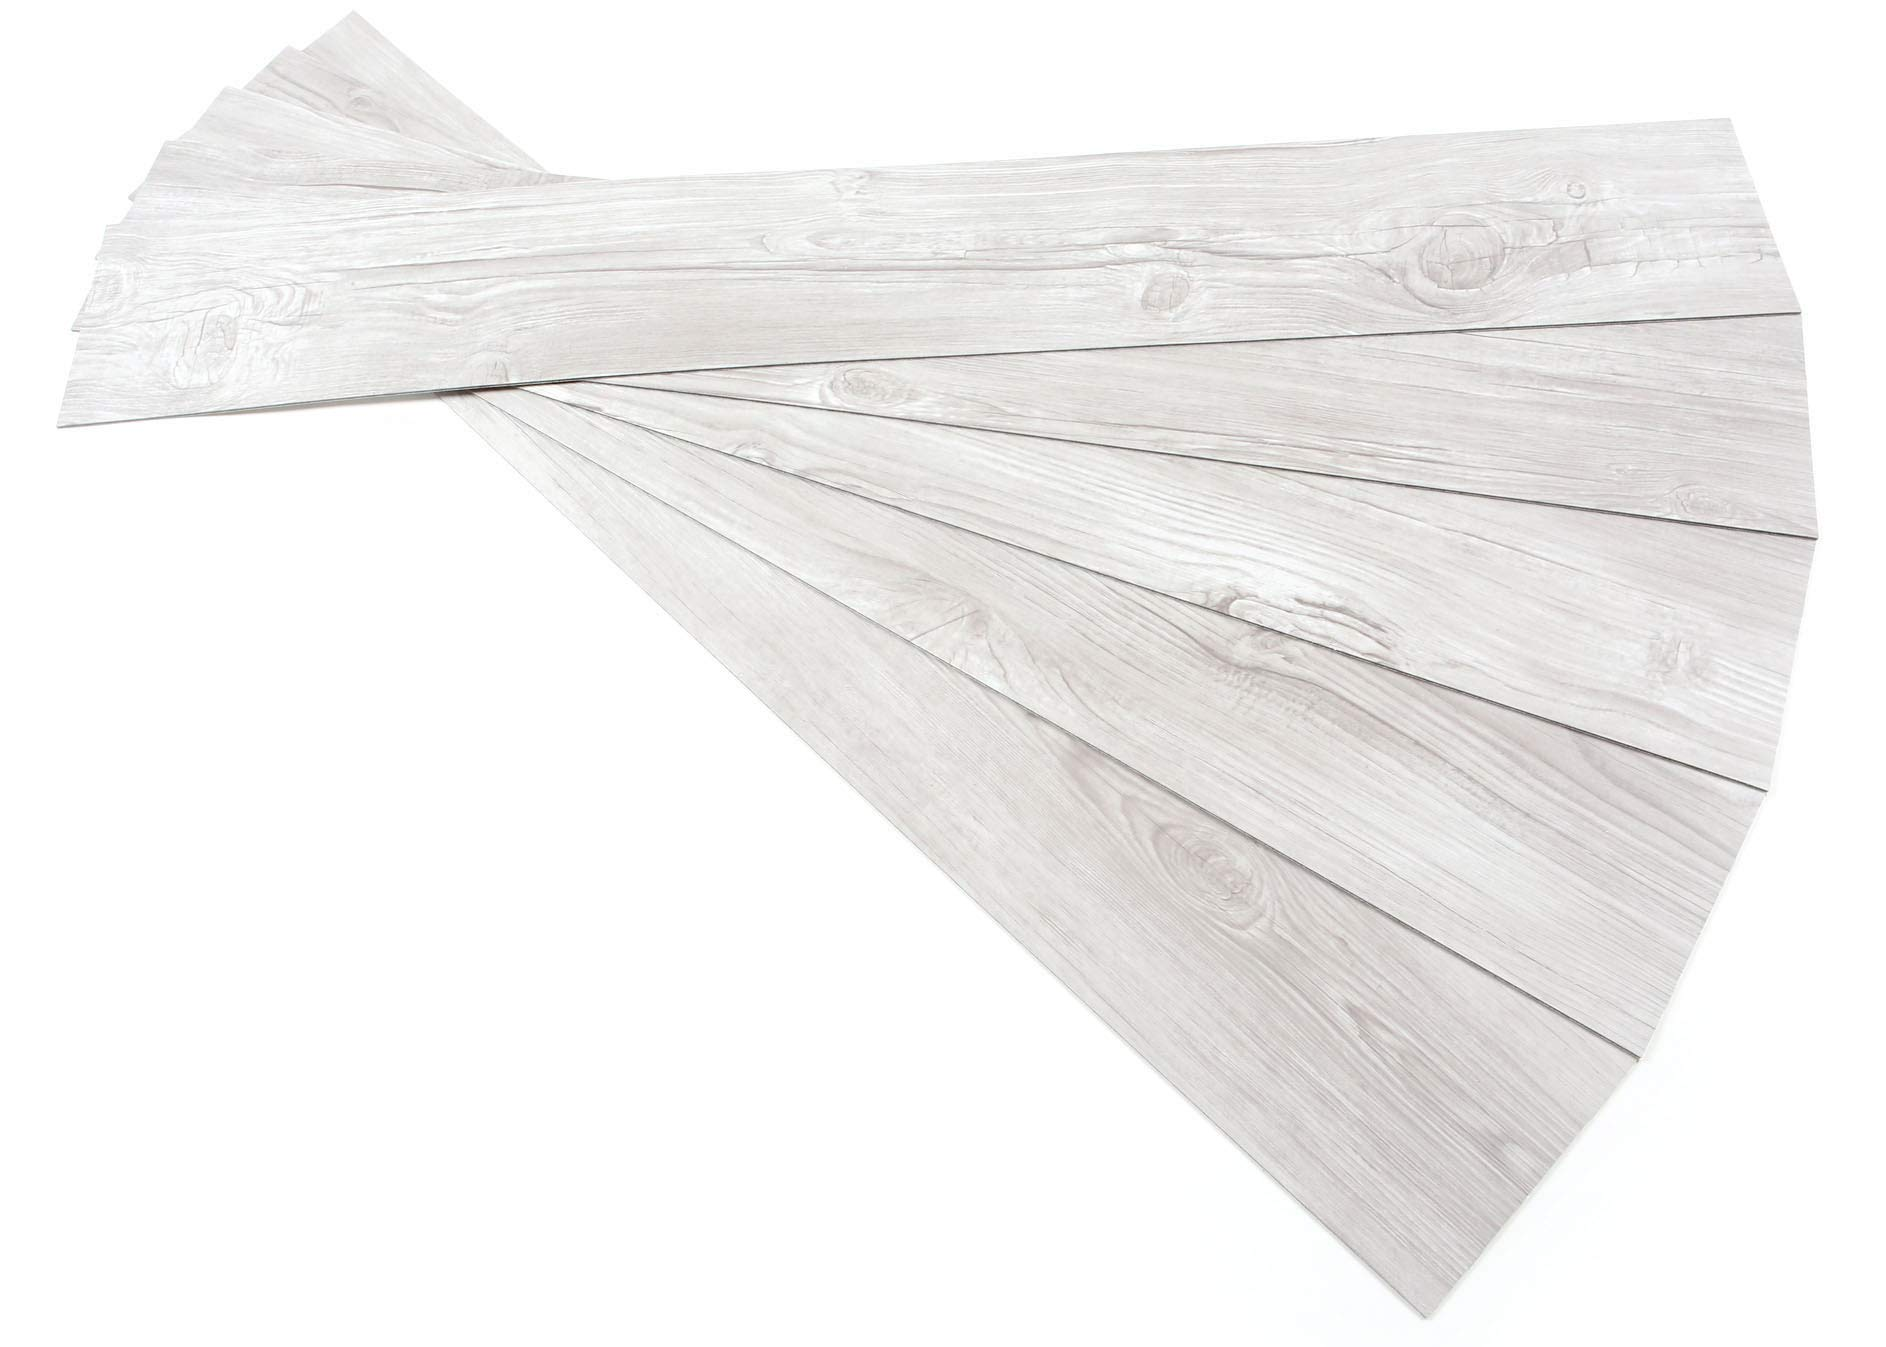 ROSEROSA Peel and Stick Antique Pine Wood Pattern Decoration Tile Vinyl Floor Planks : 39.37 inch X 5.90 inch, Thickness 2.0mm : 5 Planks (ECK-909)